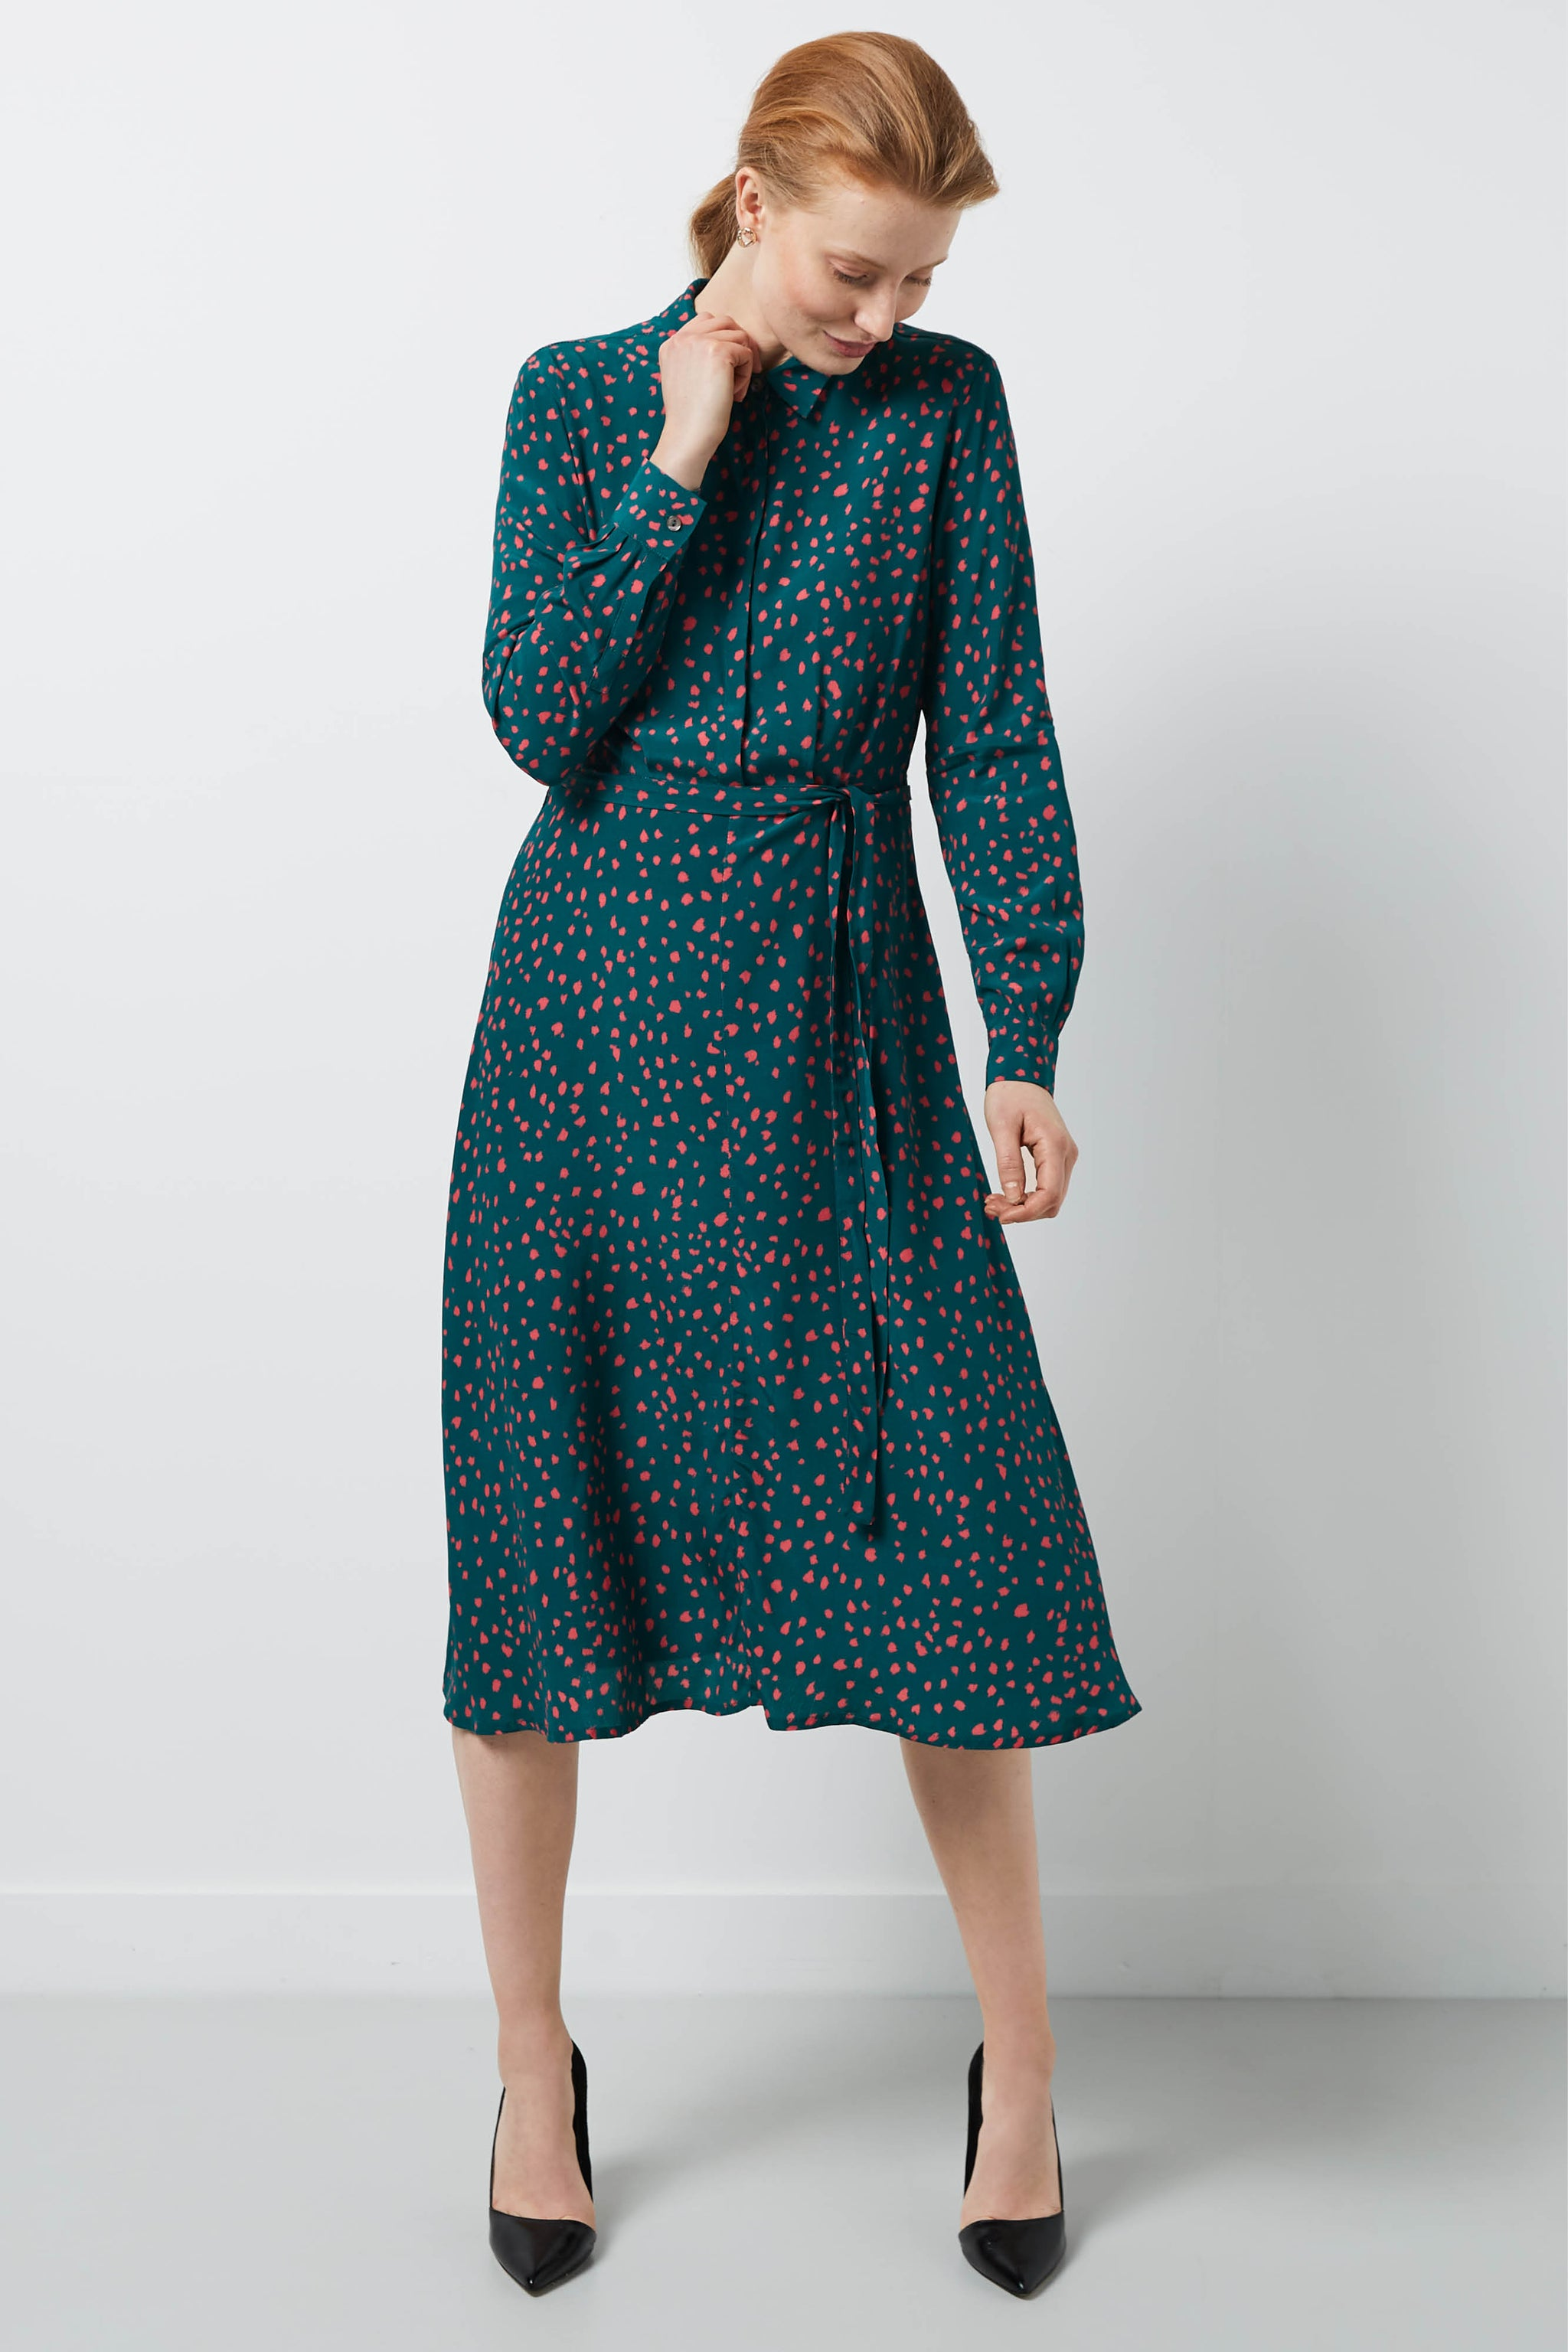 Exeter Green Dapple Print Shirt Dress